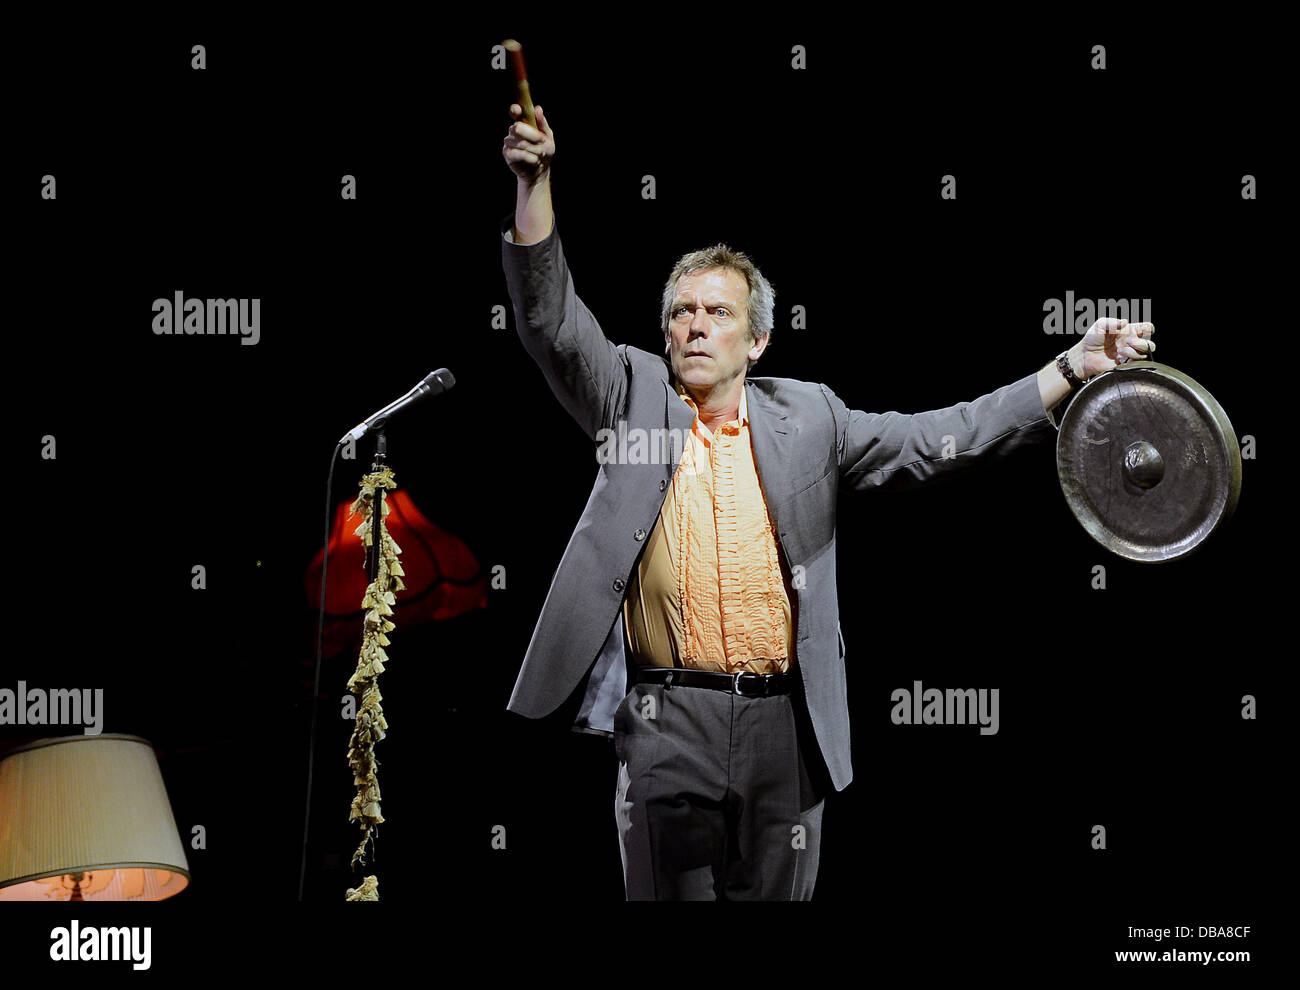 Prague, Czech Republic. 26th July 2013. British actor Hugh Laurie with the Copper Bottom Band performs live in Prague, - Stock Image